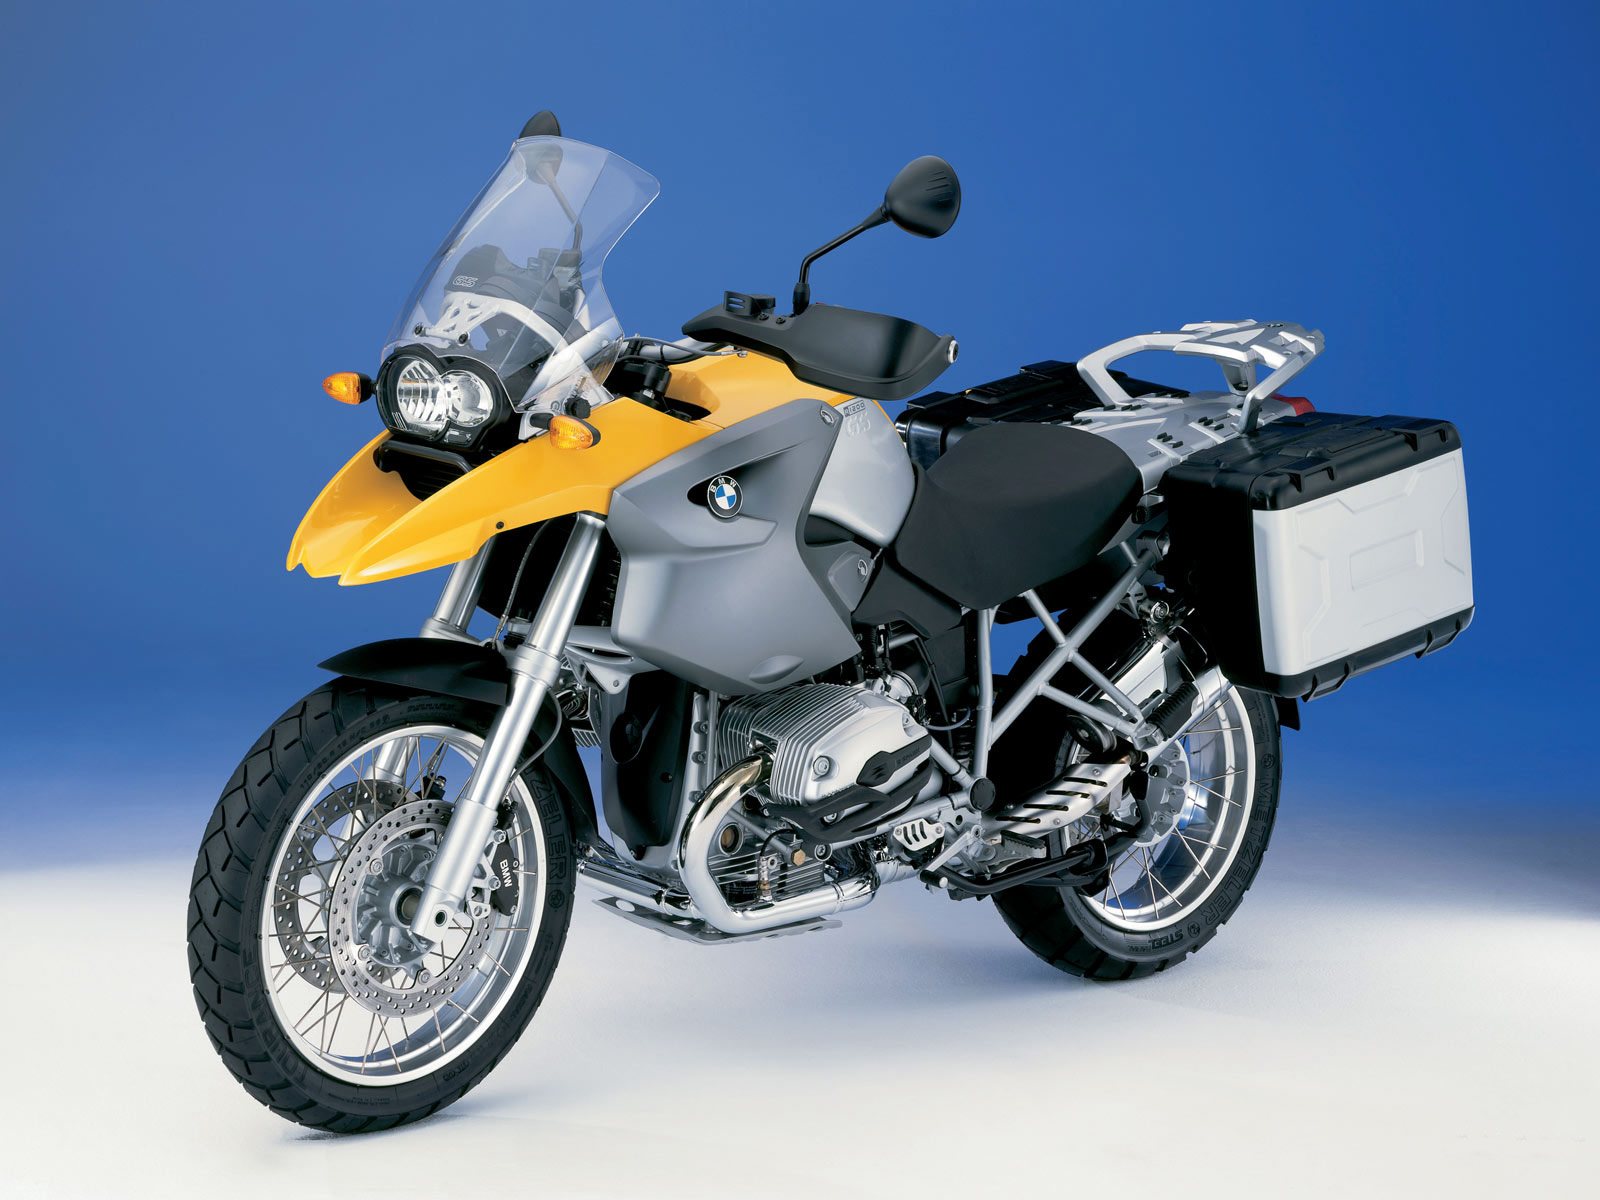 BMW Cars Motorcycles Scooters Pictures Specs Insurance